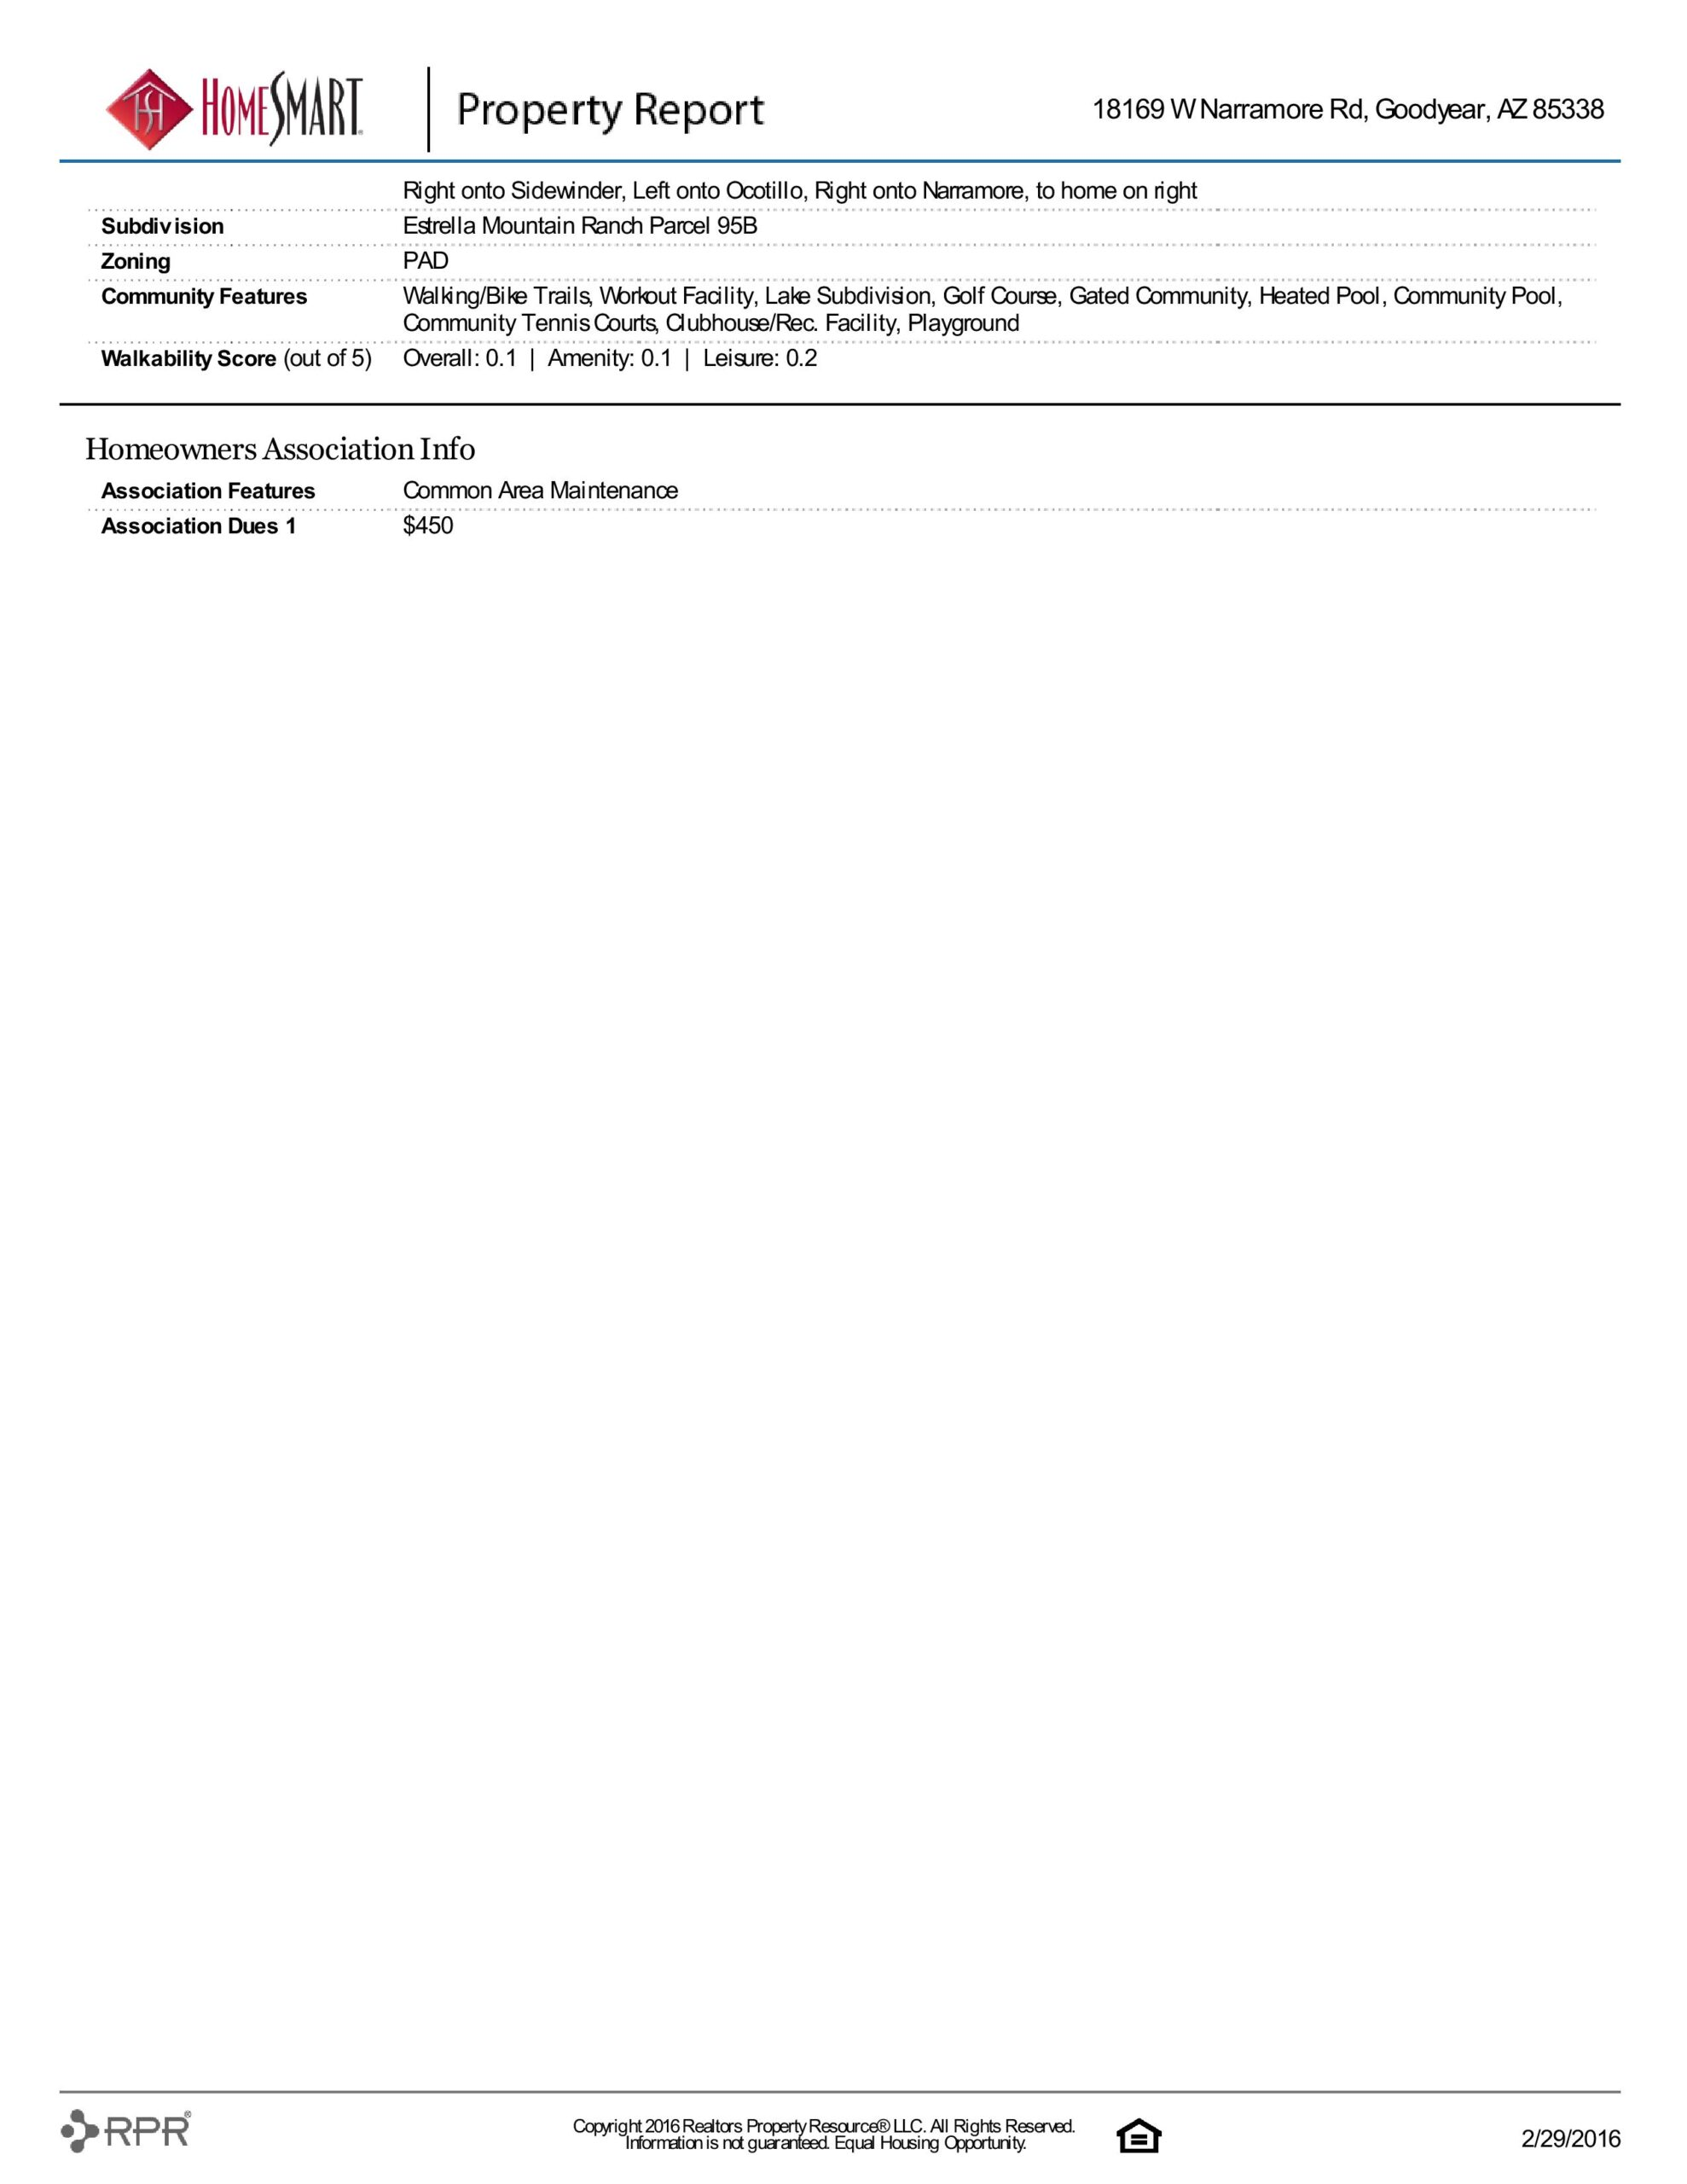 18169 W NARRAMORE RD PROPERTY REPORT-page-005